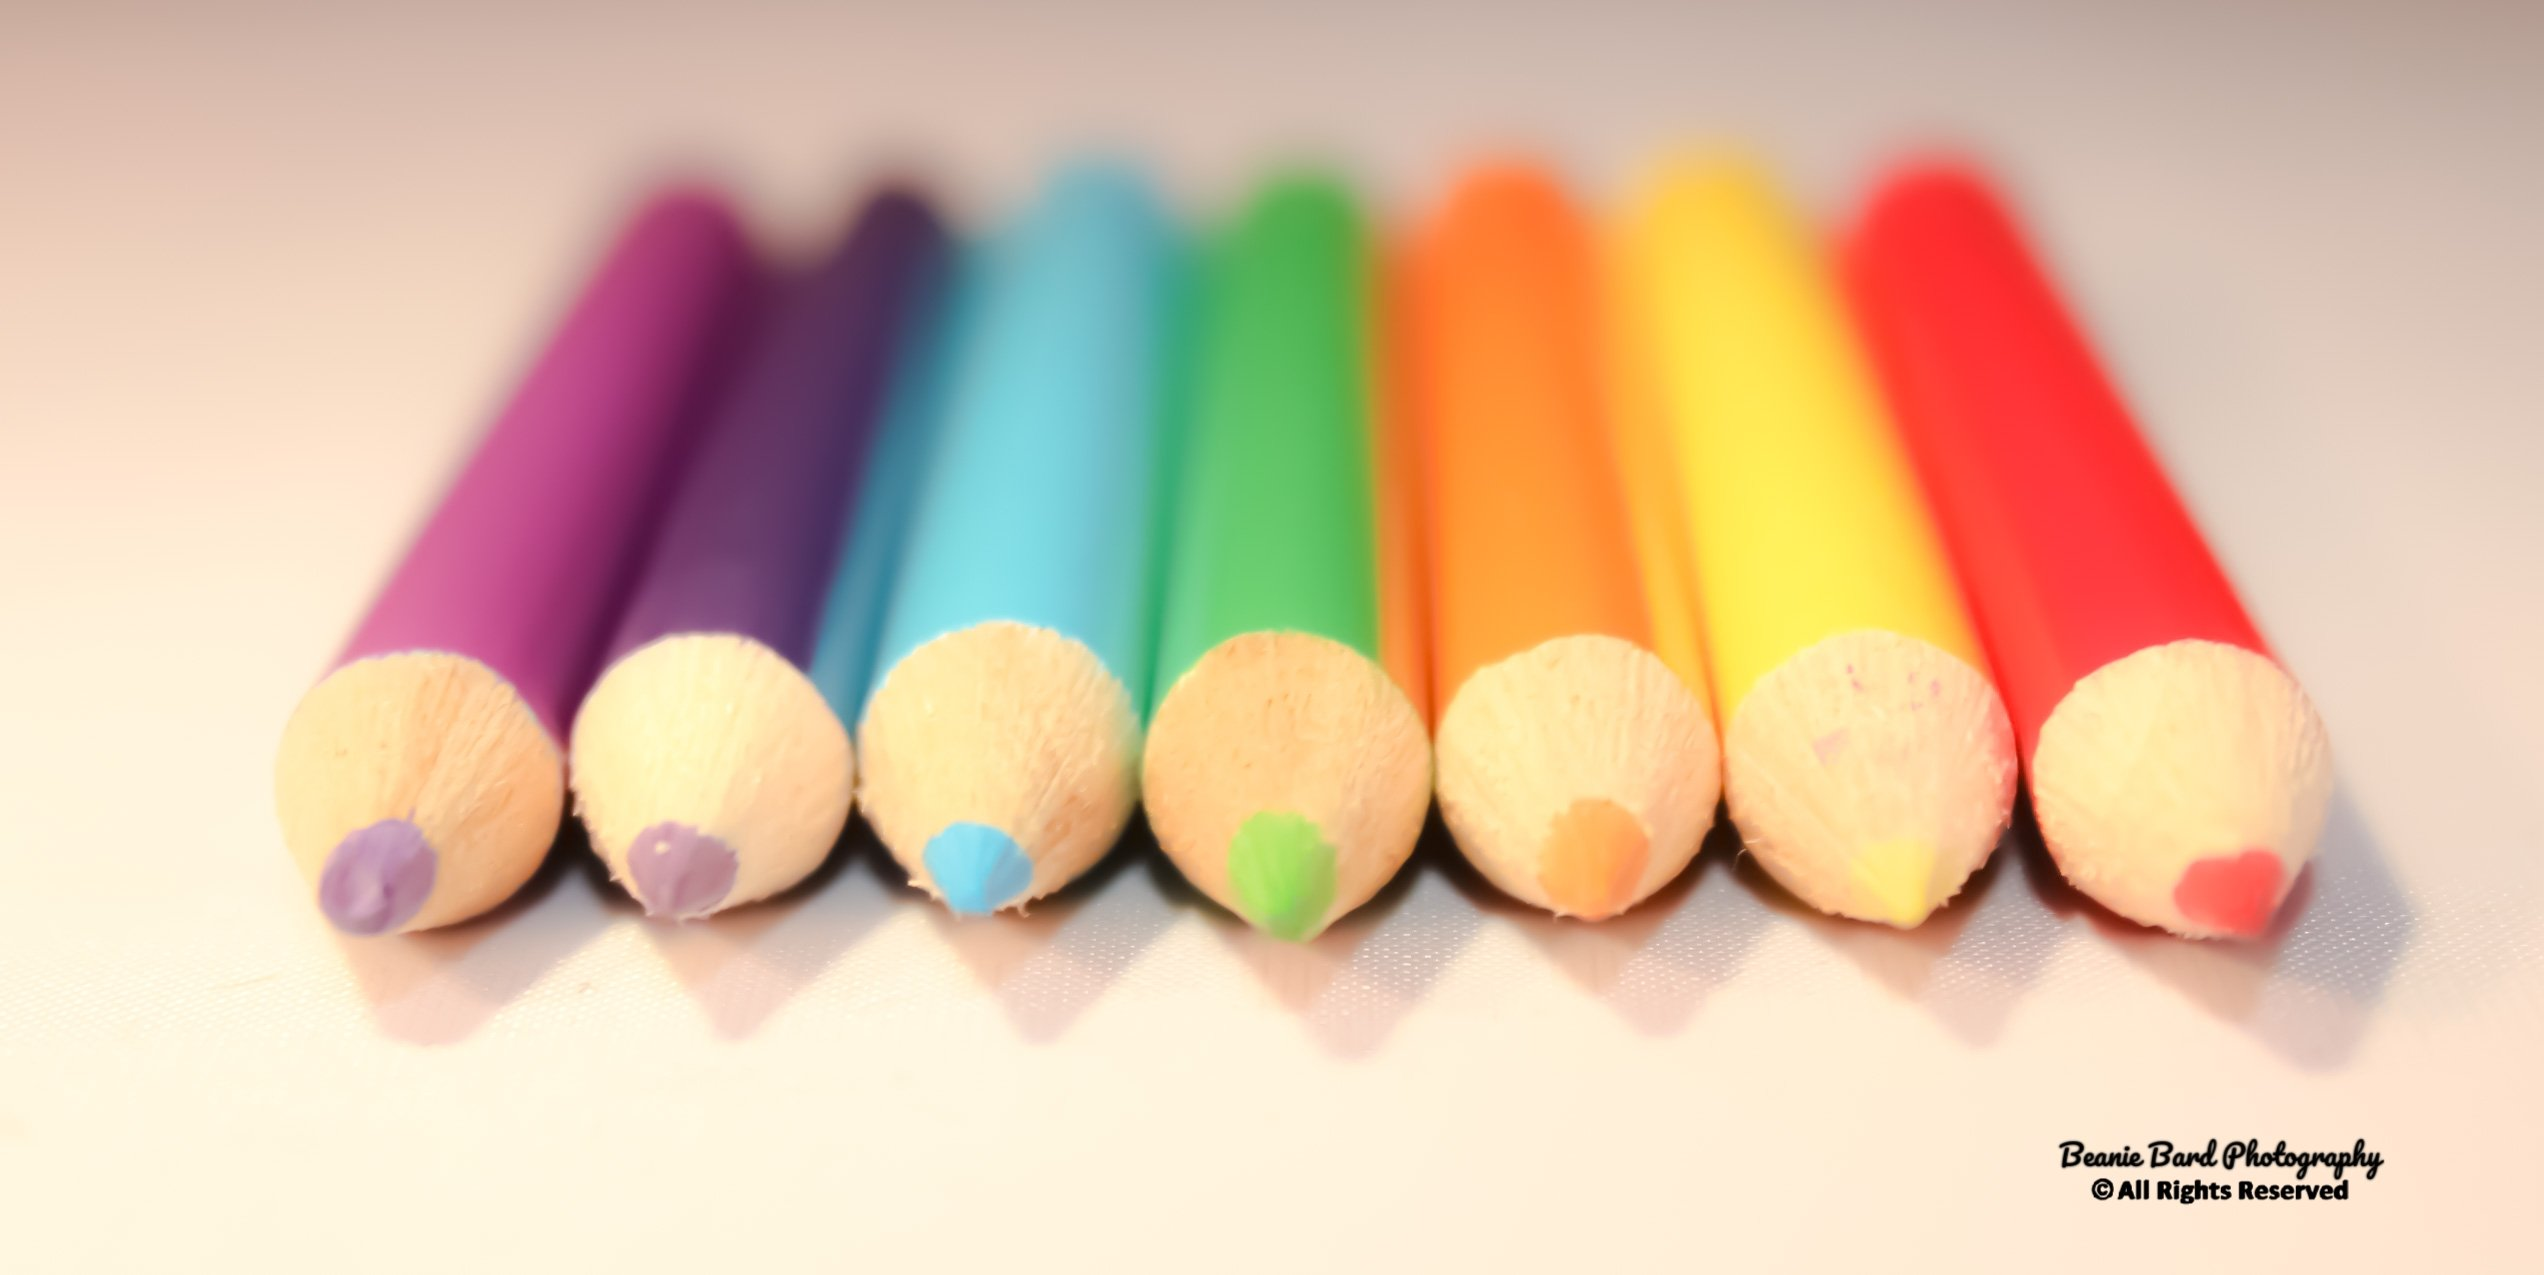 A line of coloured pencils on a white background